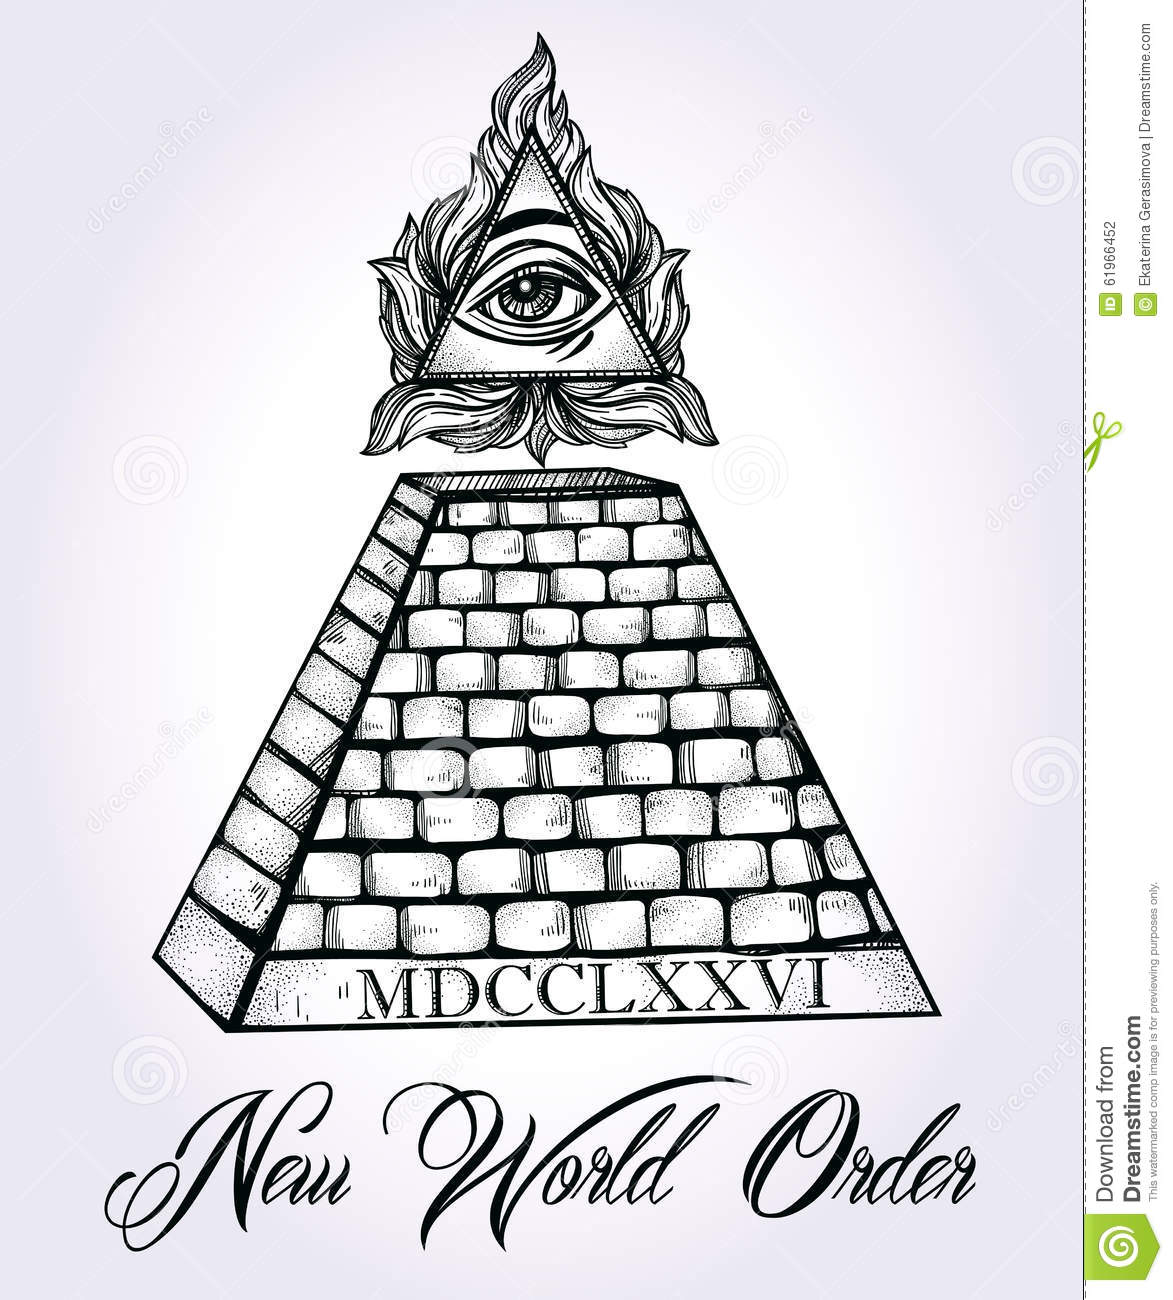 All Seeing Eye Pyramid Symbol Stock Vector Illustration Of Novus